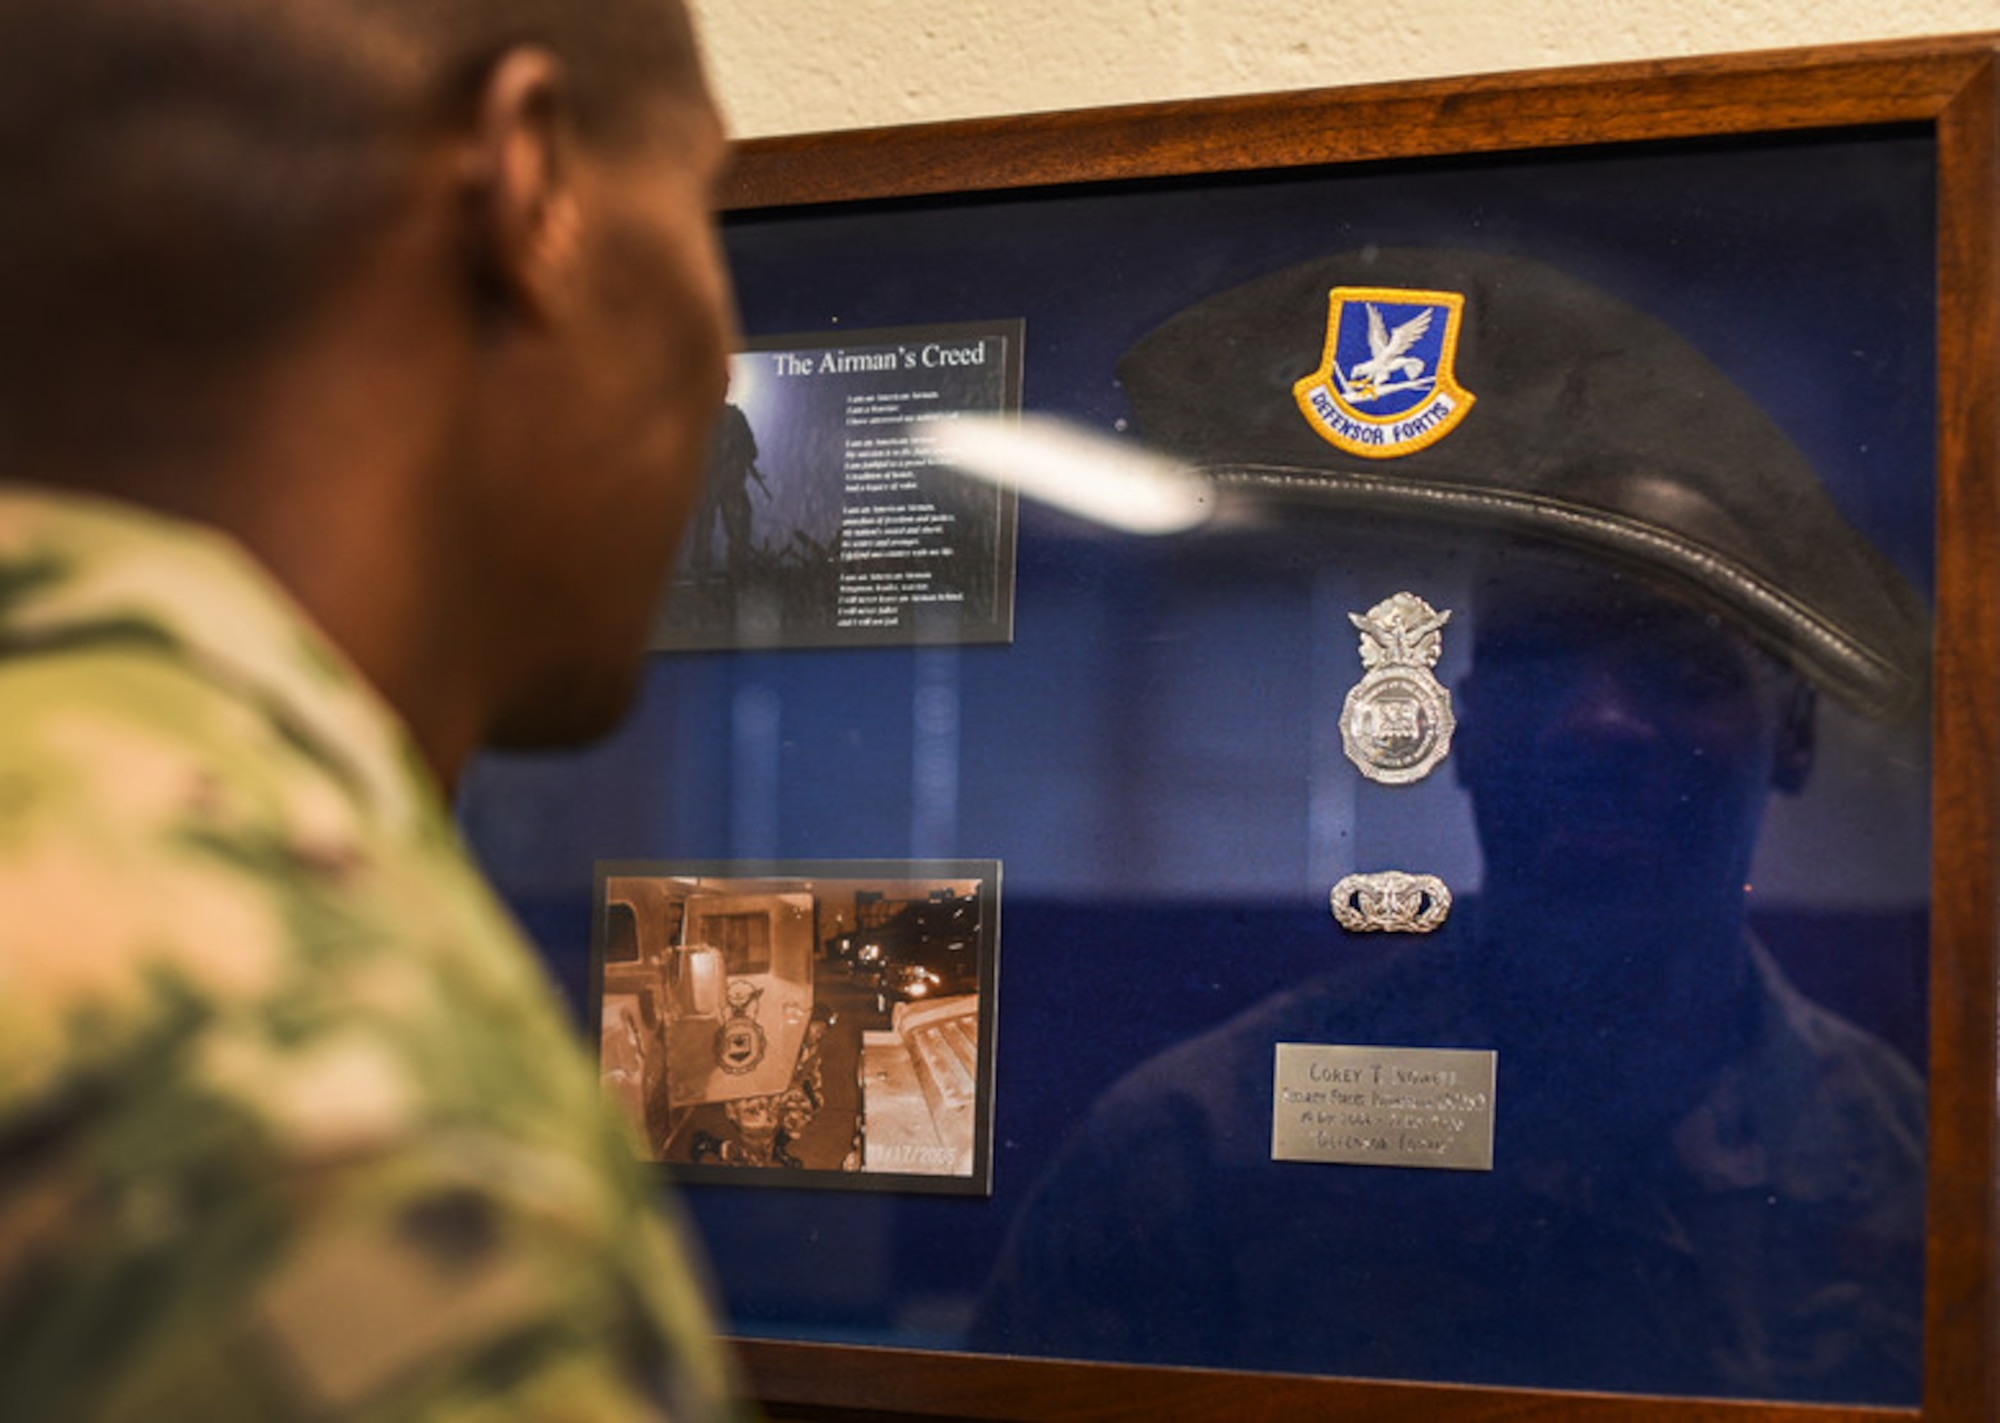 Tech. Sgt. Corey Nowell, noncommissioned officer in charge of movement support at the Joint Personal Property Shipping Office Northeast, is reflected in his security forces shadow box at Hanscom Air Force Base, Mass., Feb. 21, 2020. Nowell enlisted in the Air Force at 18 years old as a security forces defender but retrained as a traffic manager following a car accident that resulted in a level-2 concussion. (U.S. Air Force photo by Mark Herlihy)